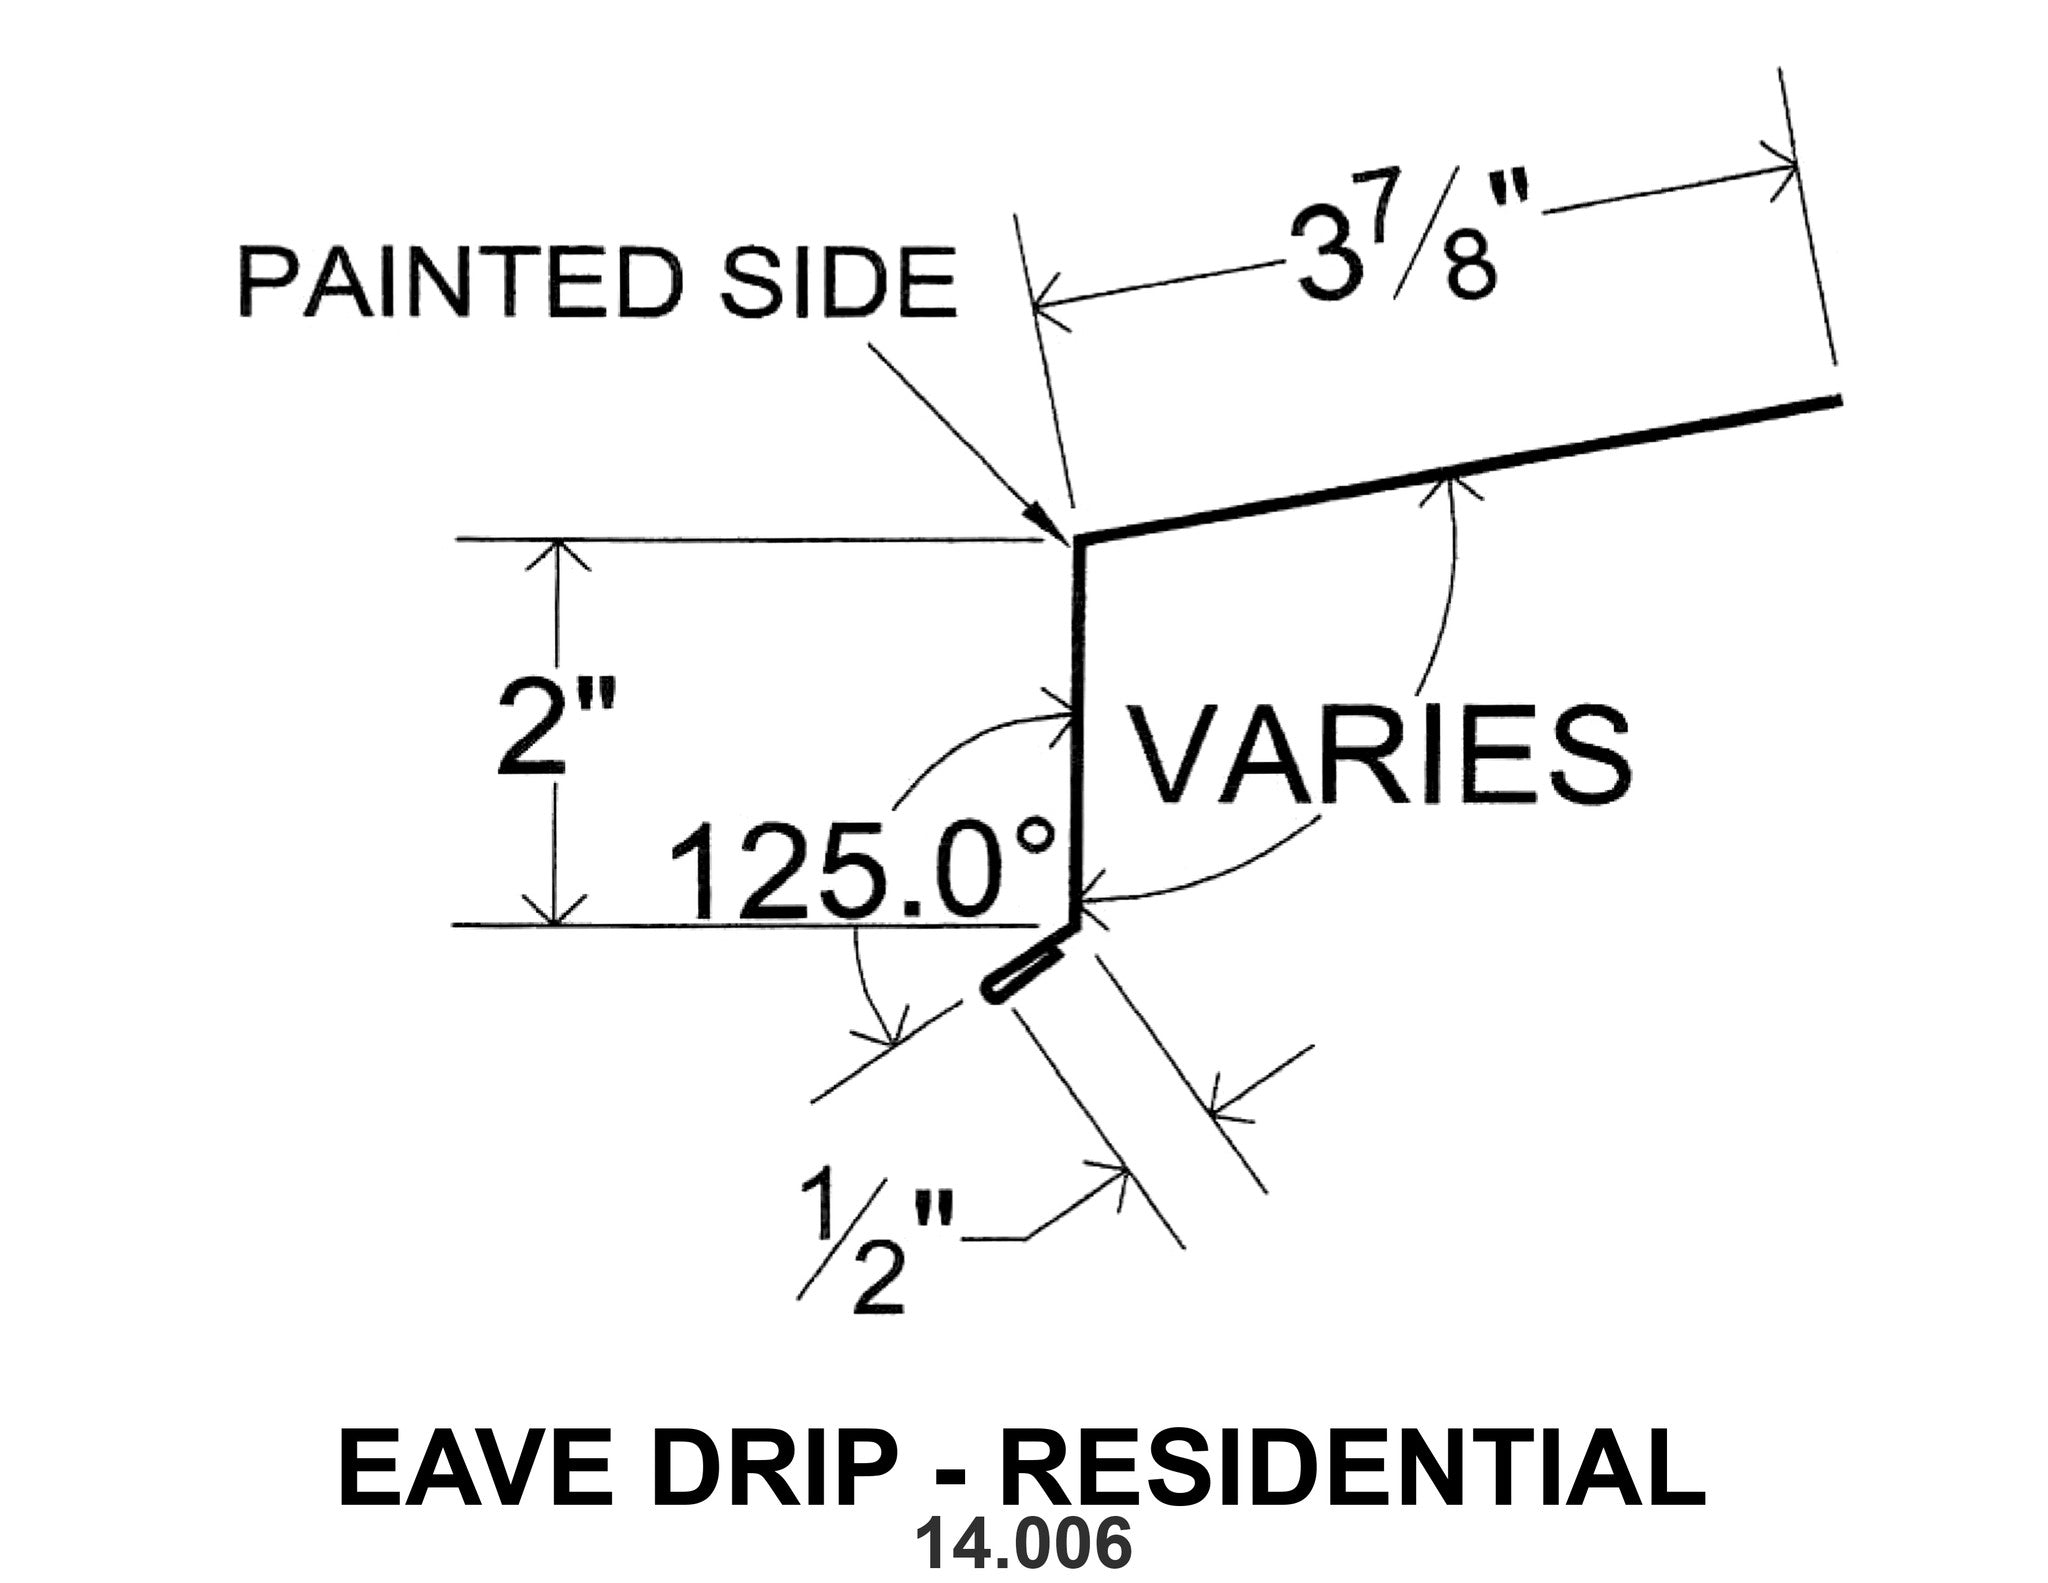 Eve Drip Residential additionally Sheds likewise Steel Roof Truss Design Pdf besides Carport together with Ridge Cap 20 10 008. on metal lean to carports